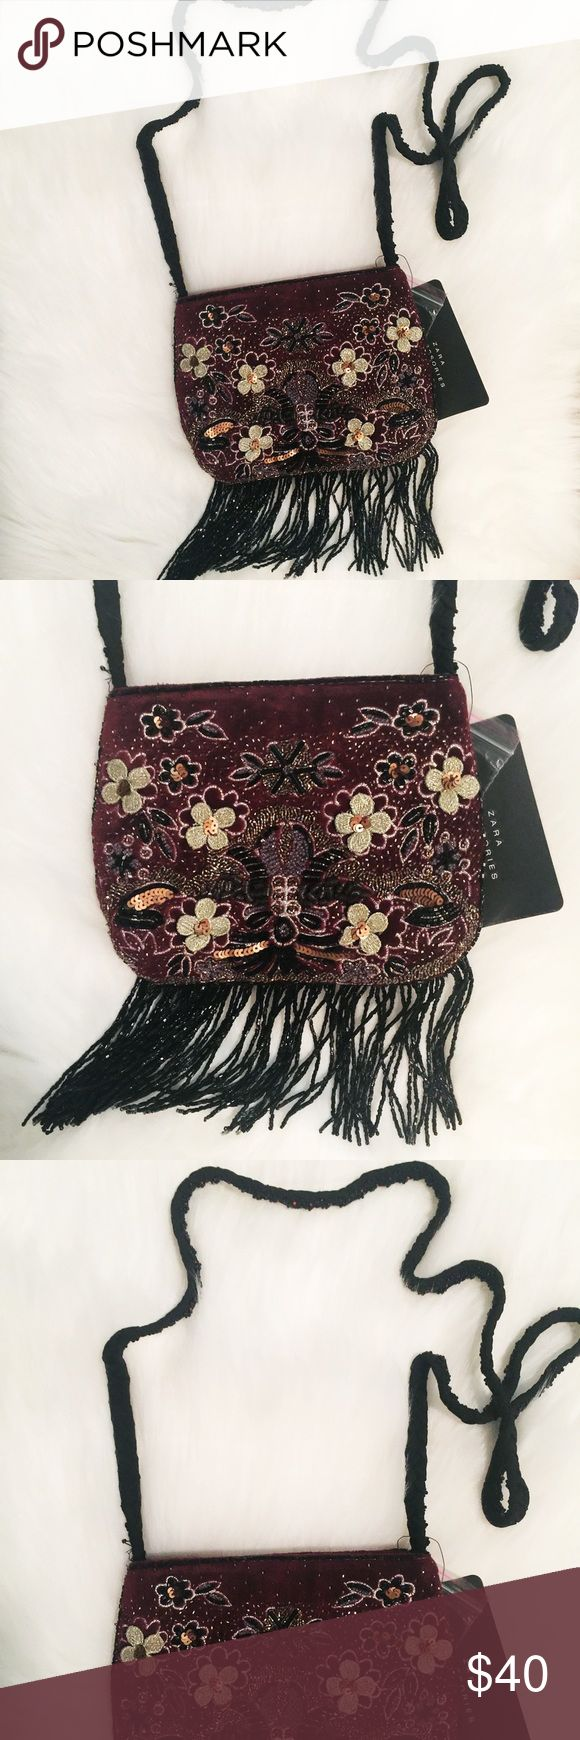 Zara purse Zara purse with embellishments and fringe. Can use as a cross body purse Zara Bags Crossbody Bags